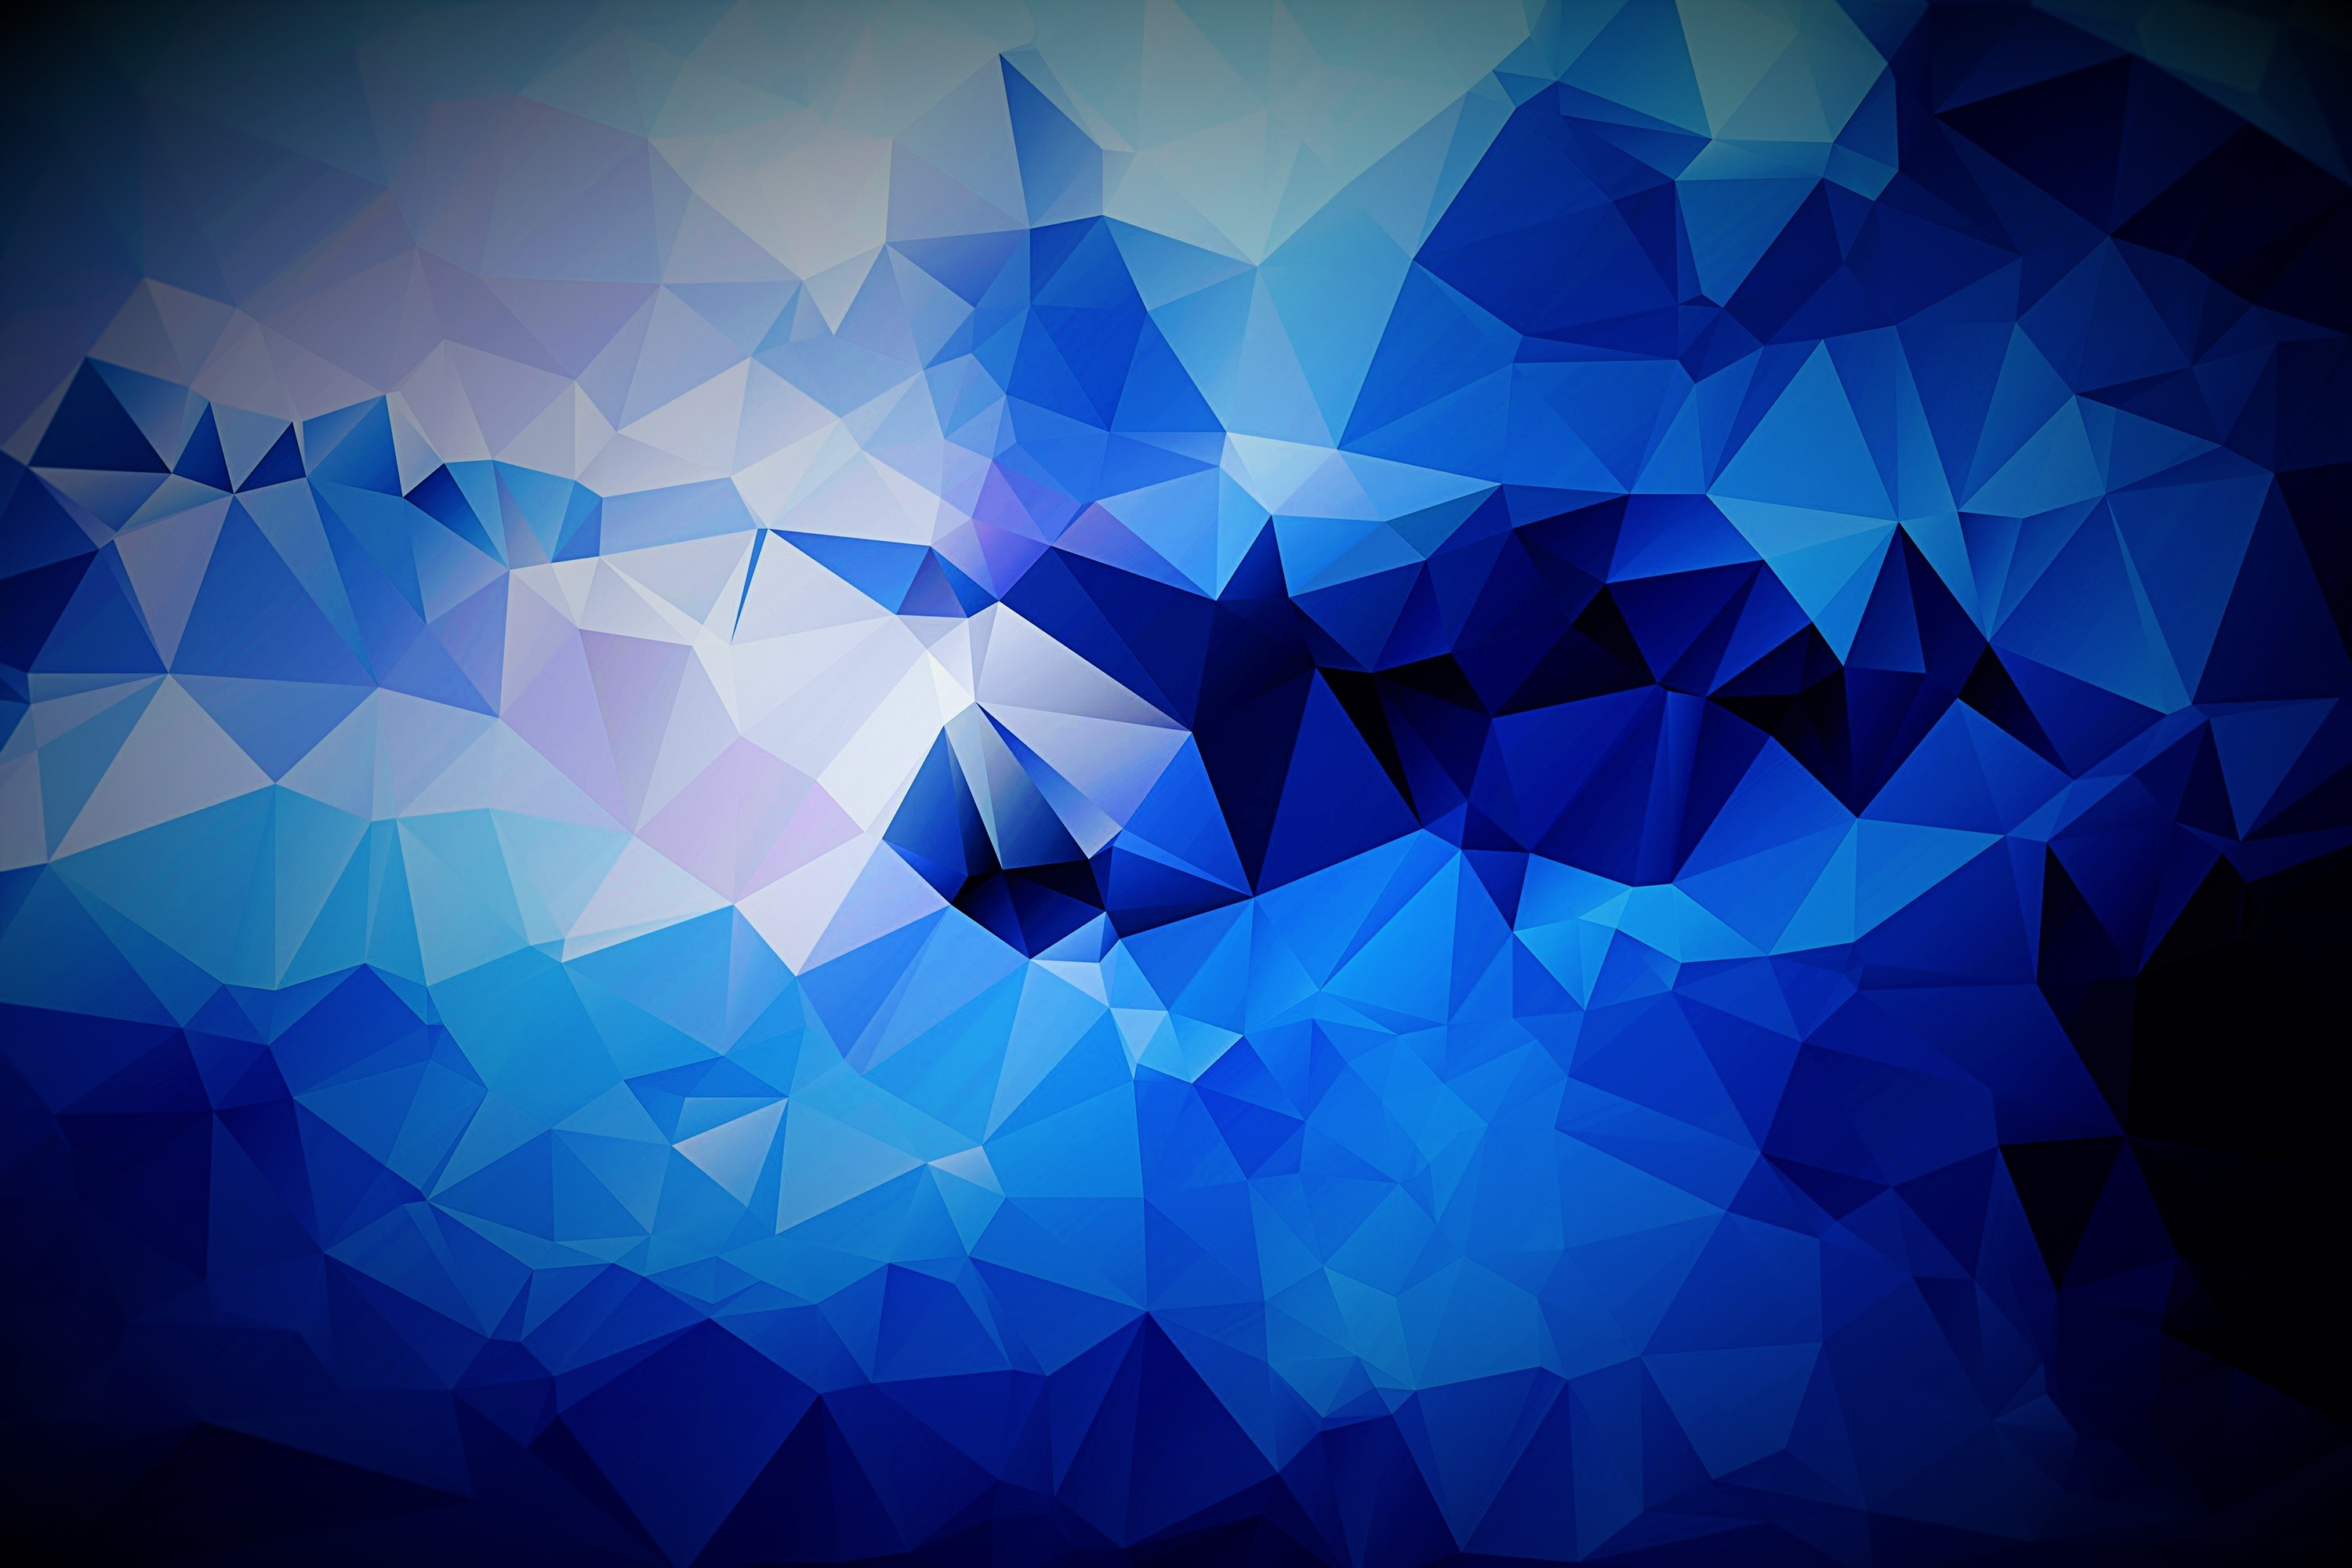 blue abstract wallpaper (79 wallpapers) – hd wallpapers